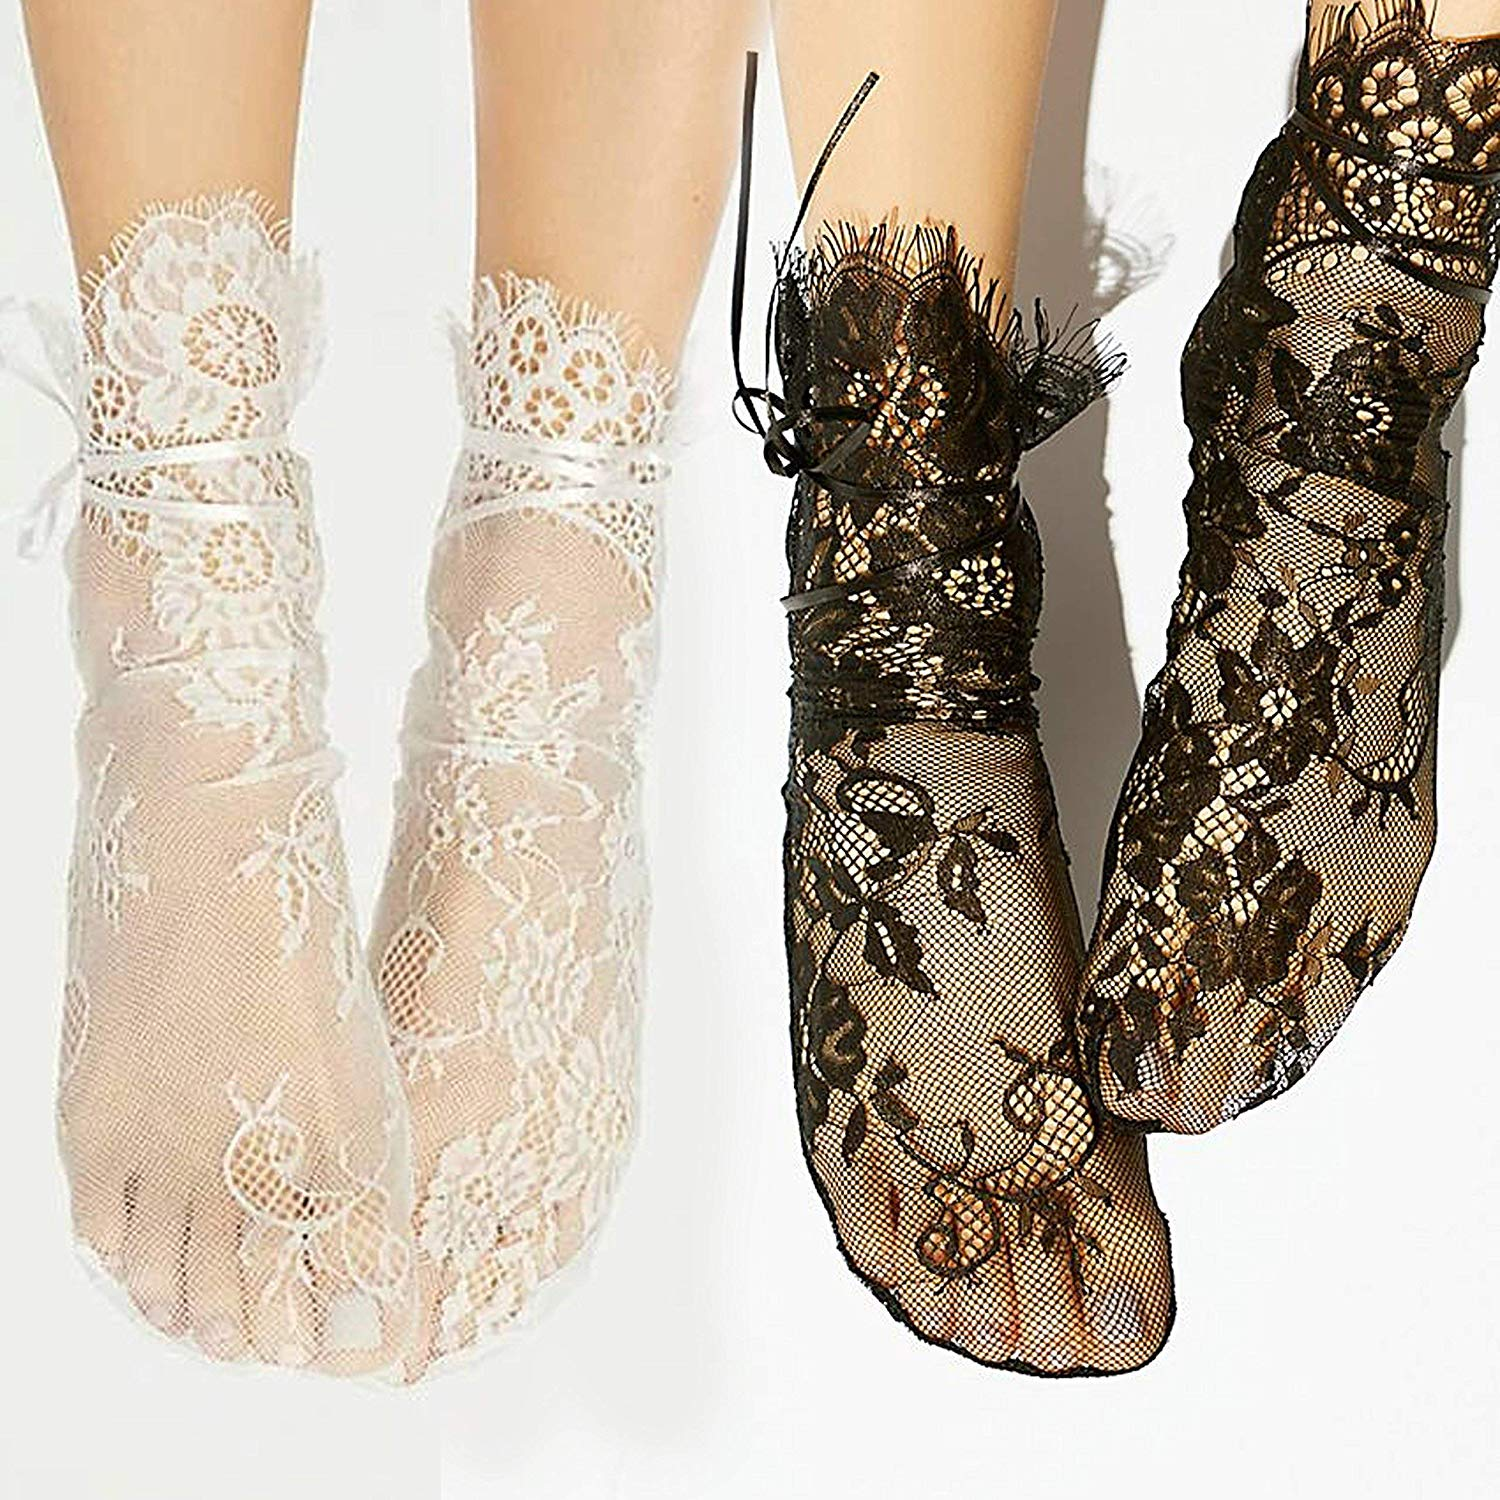 8fa7557fffc6a Cheap Long Lace Socks, find Long Lace Socks deals on line at Alibaba.com